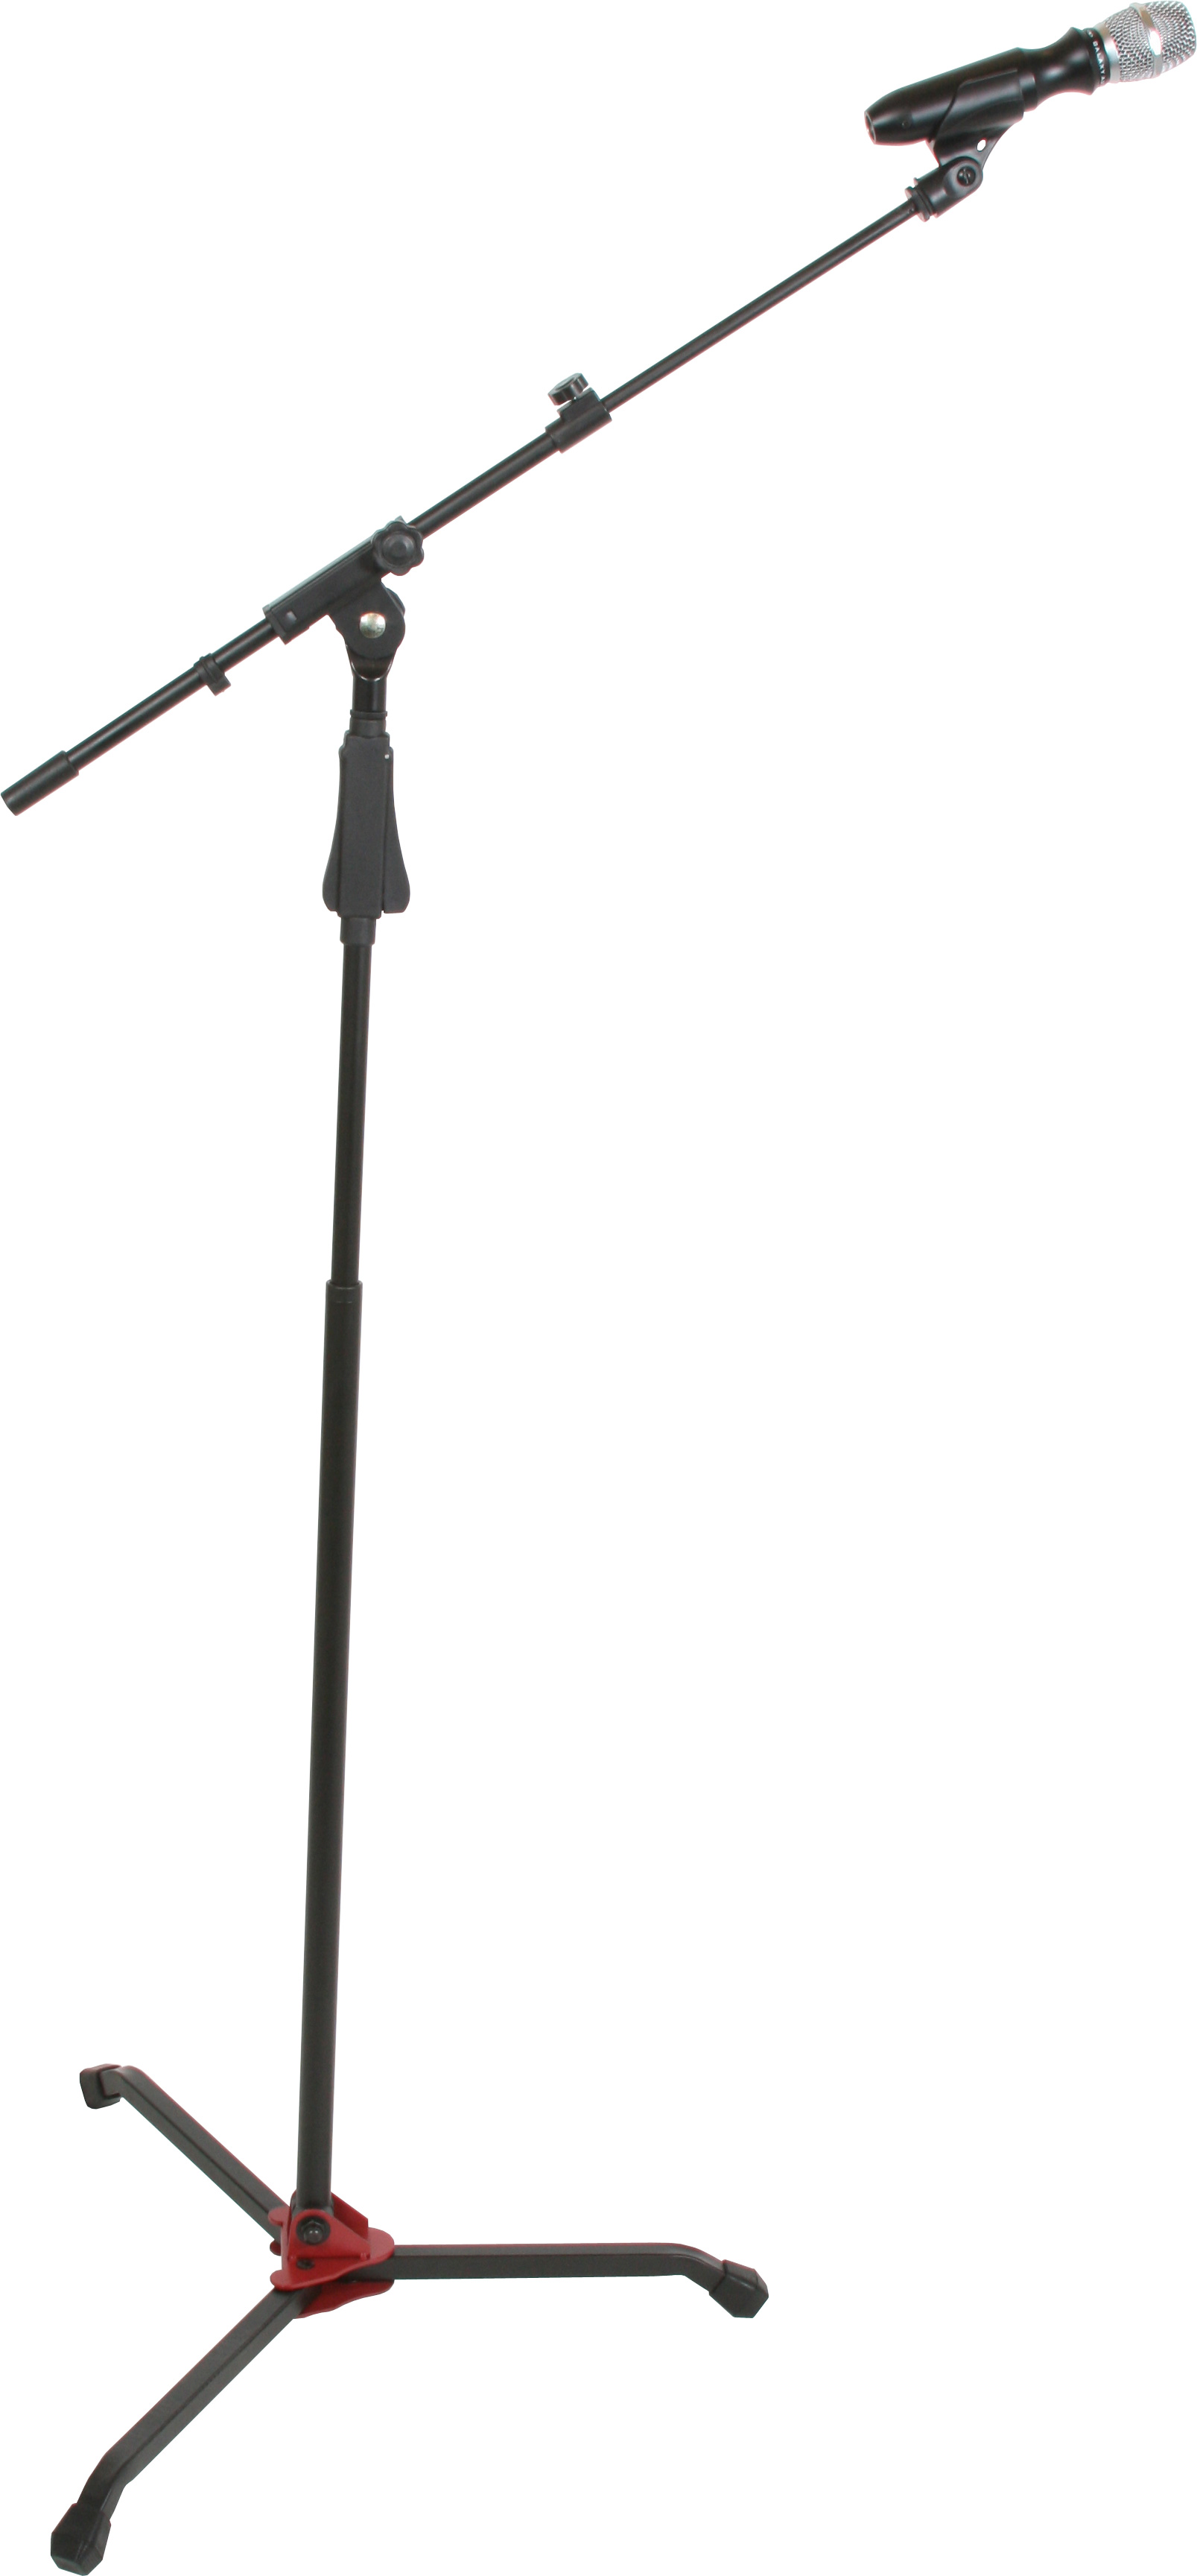 Galaxy Audio Standformer Mst T50 Microphone Stand